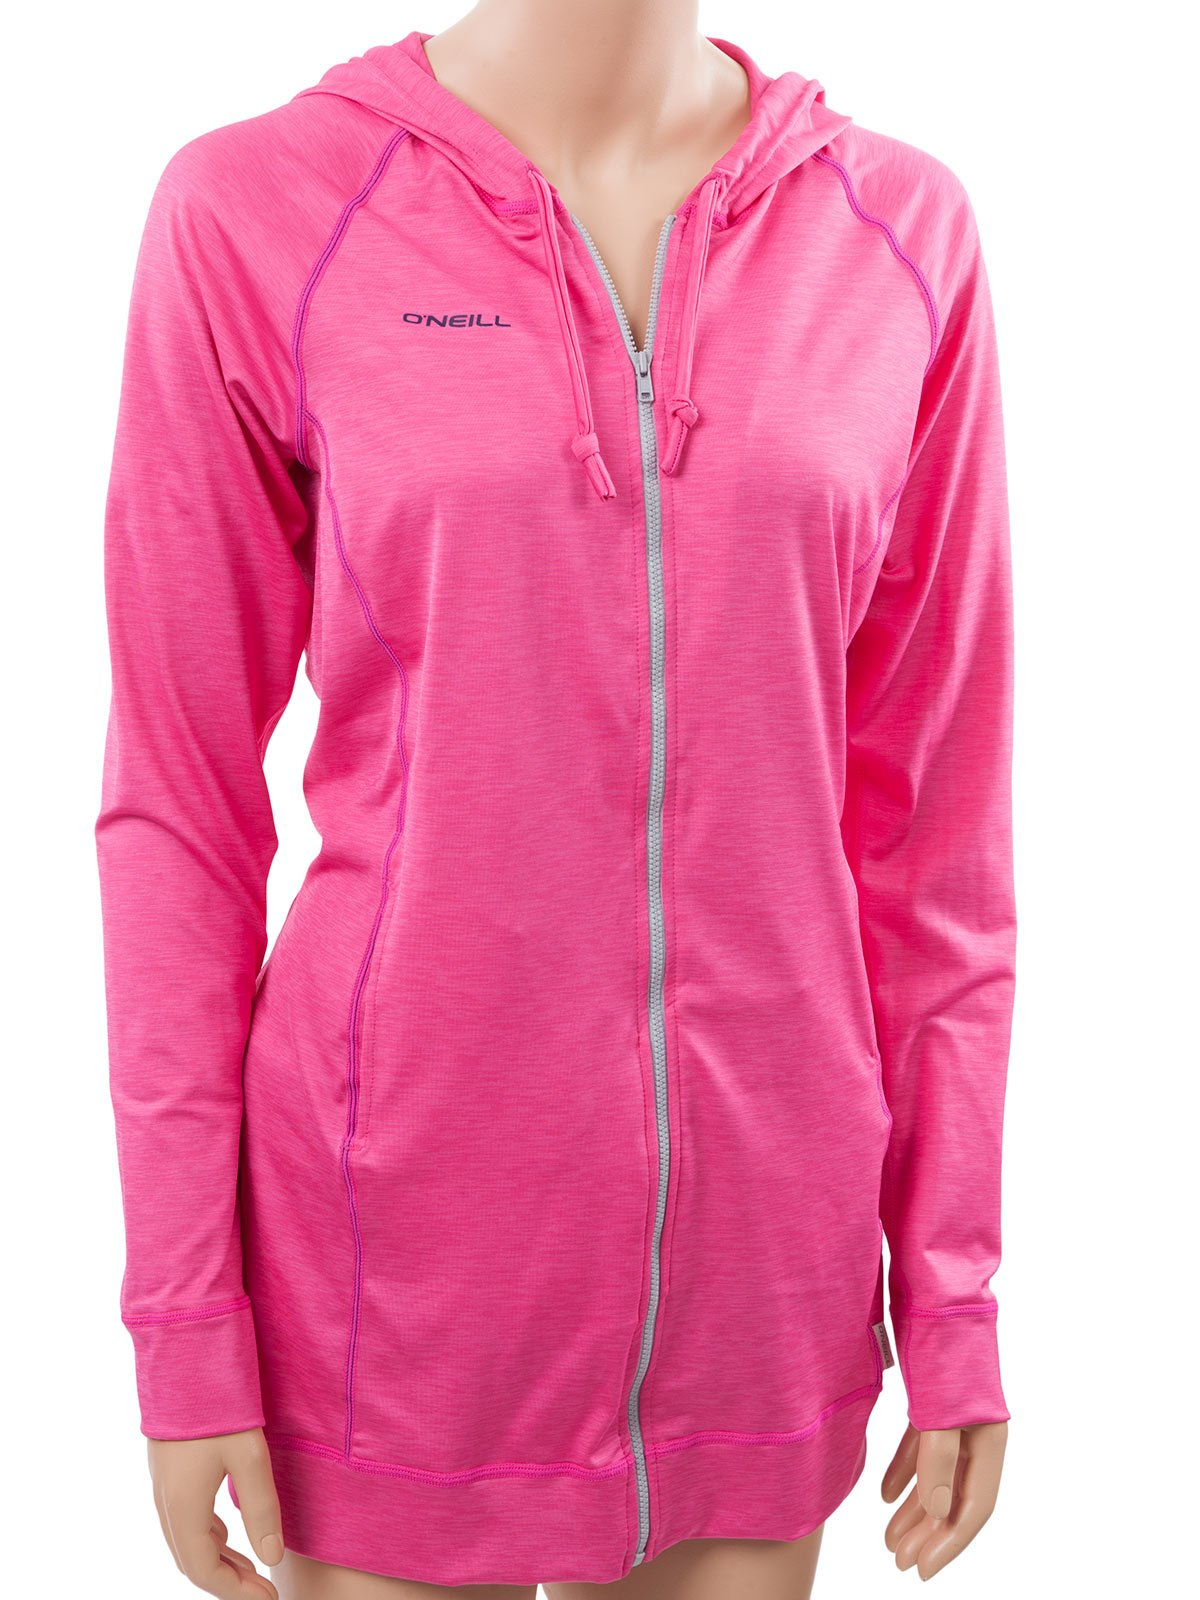 O'Neill Women's 24/7 Hybrid Long Zip Hoody XS Berry/navy (4704S)